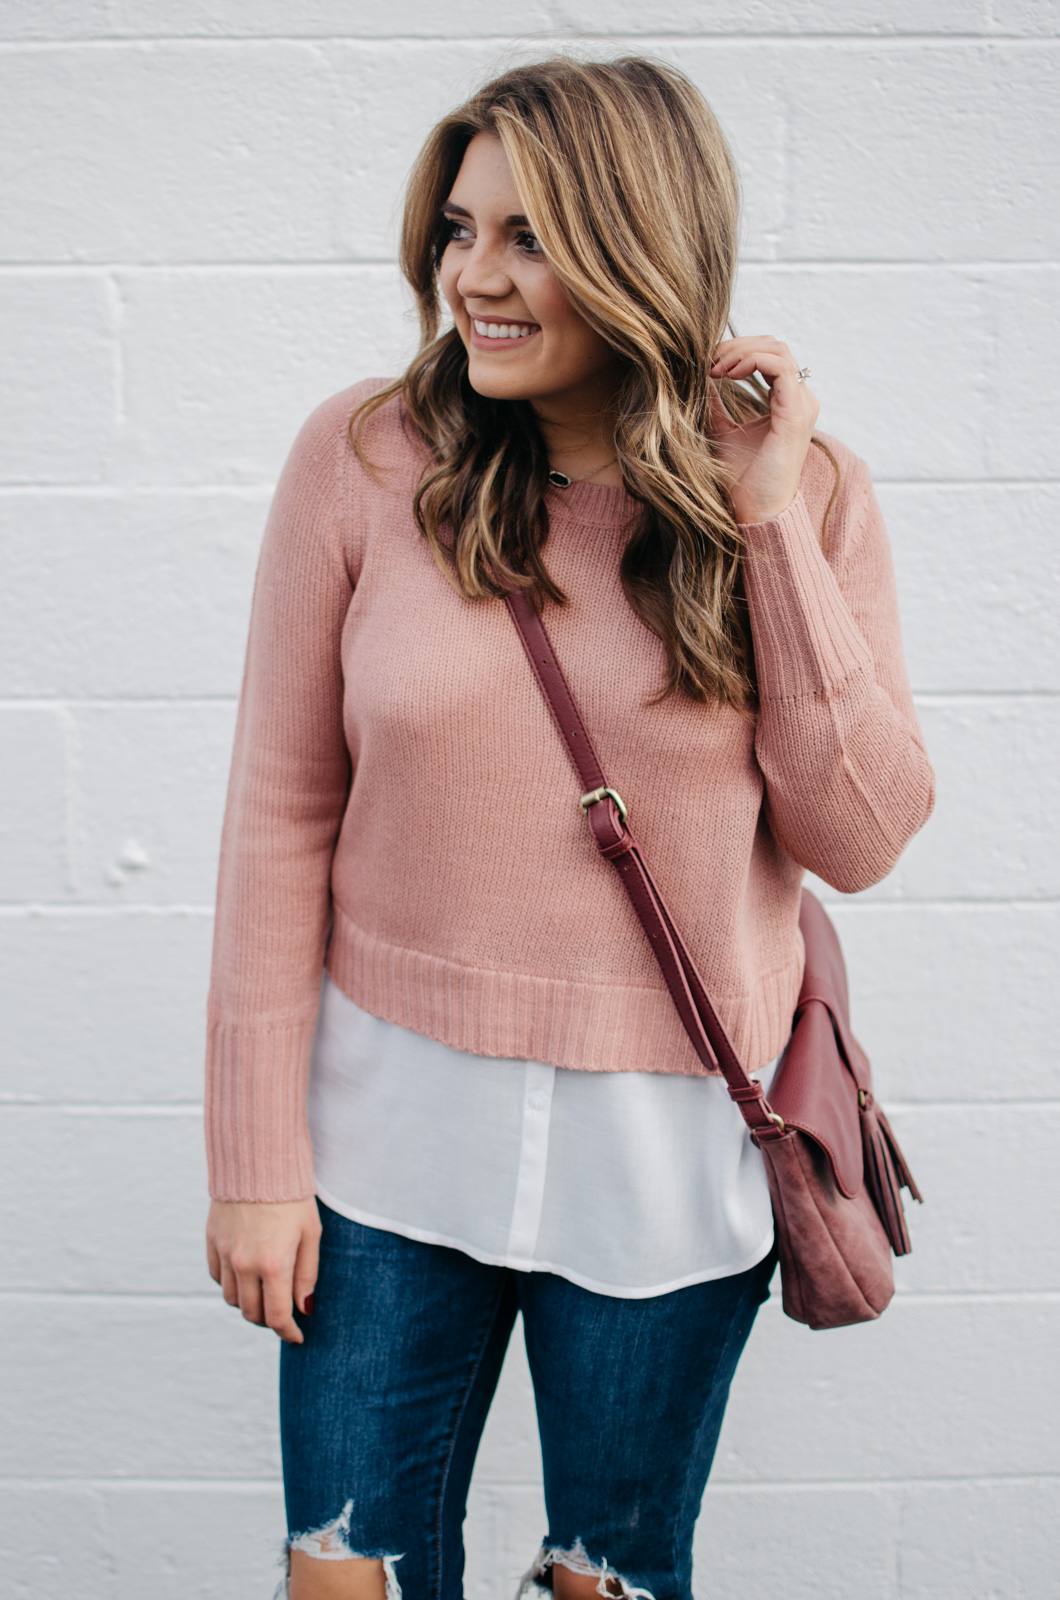 layered sweater outfit - classic fall outfit | For more preppy Fall outfit ideas, click through to bylaurenm.com!